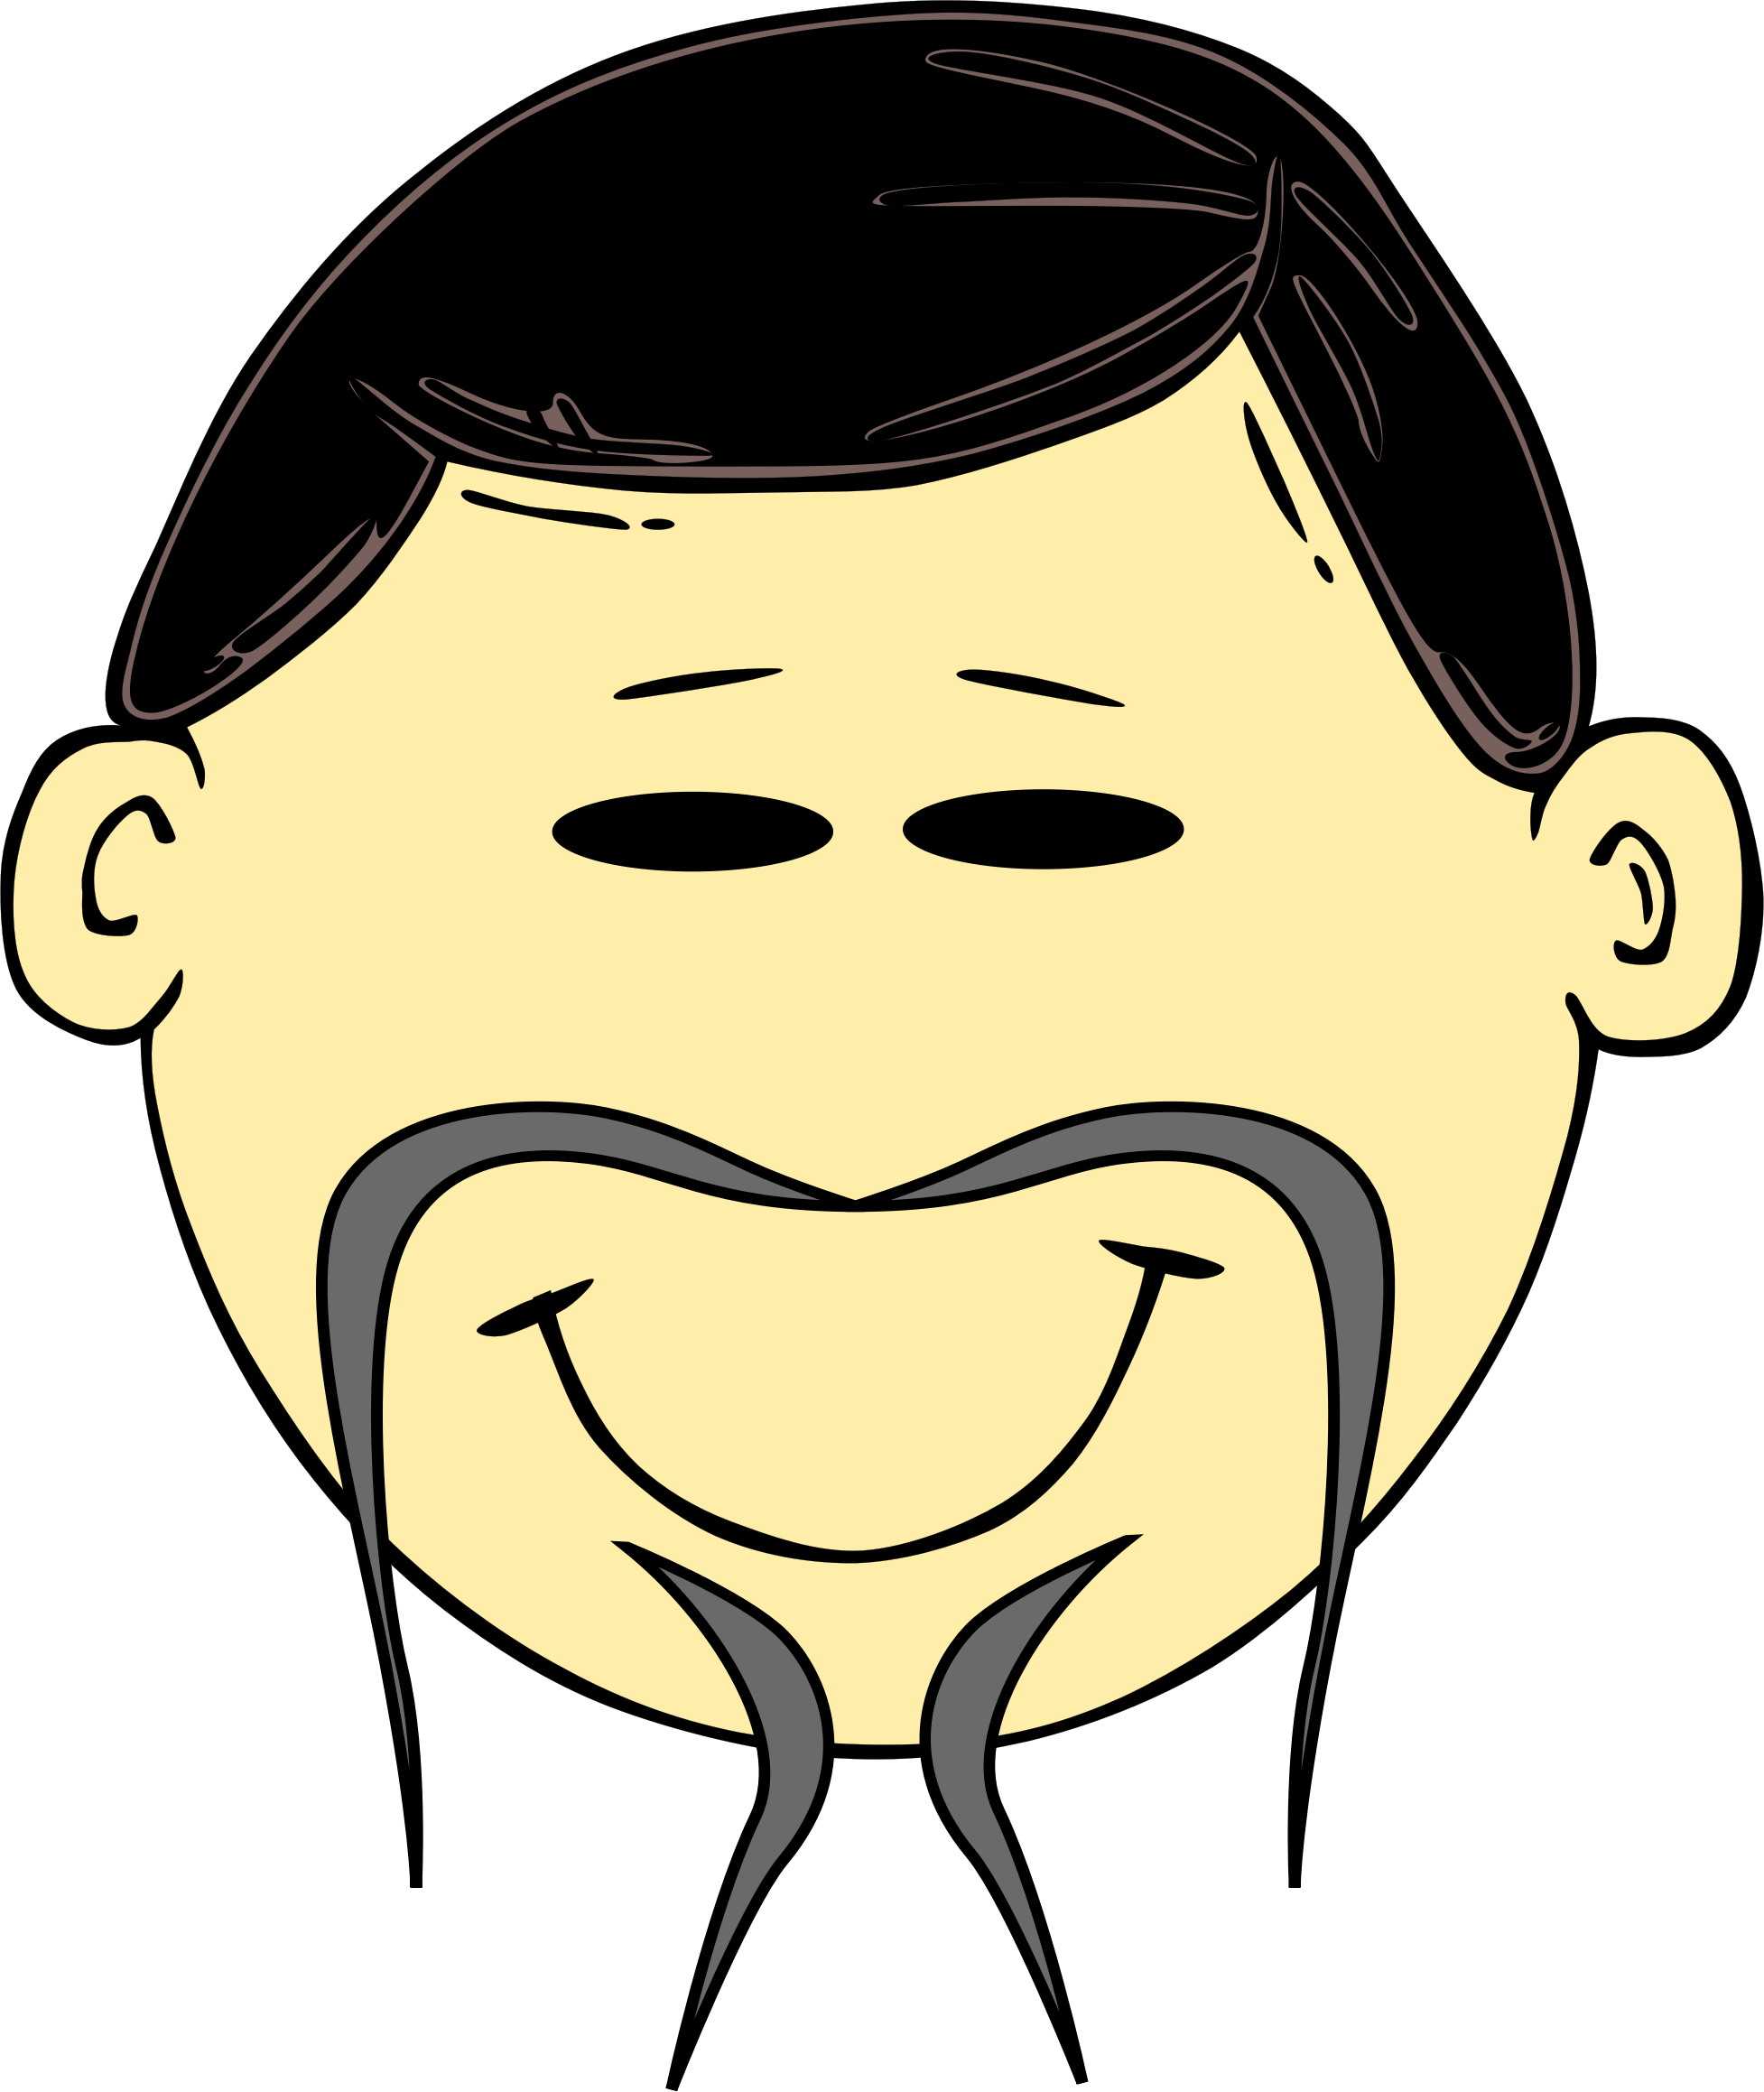 Big image png. Chinese clipart guy chinese jpg stock